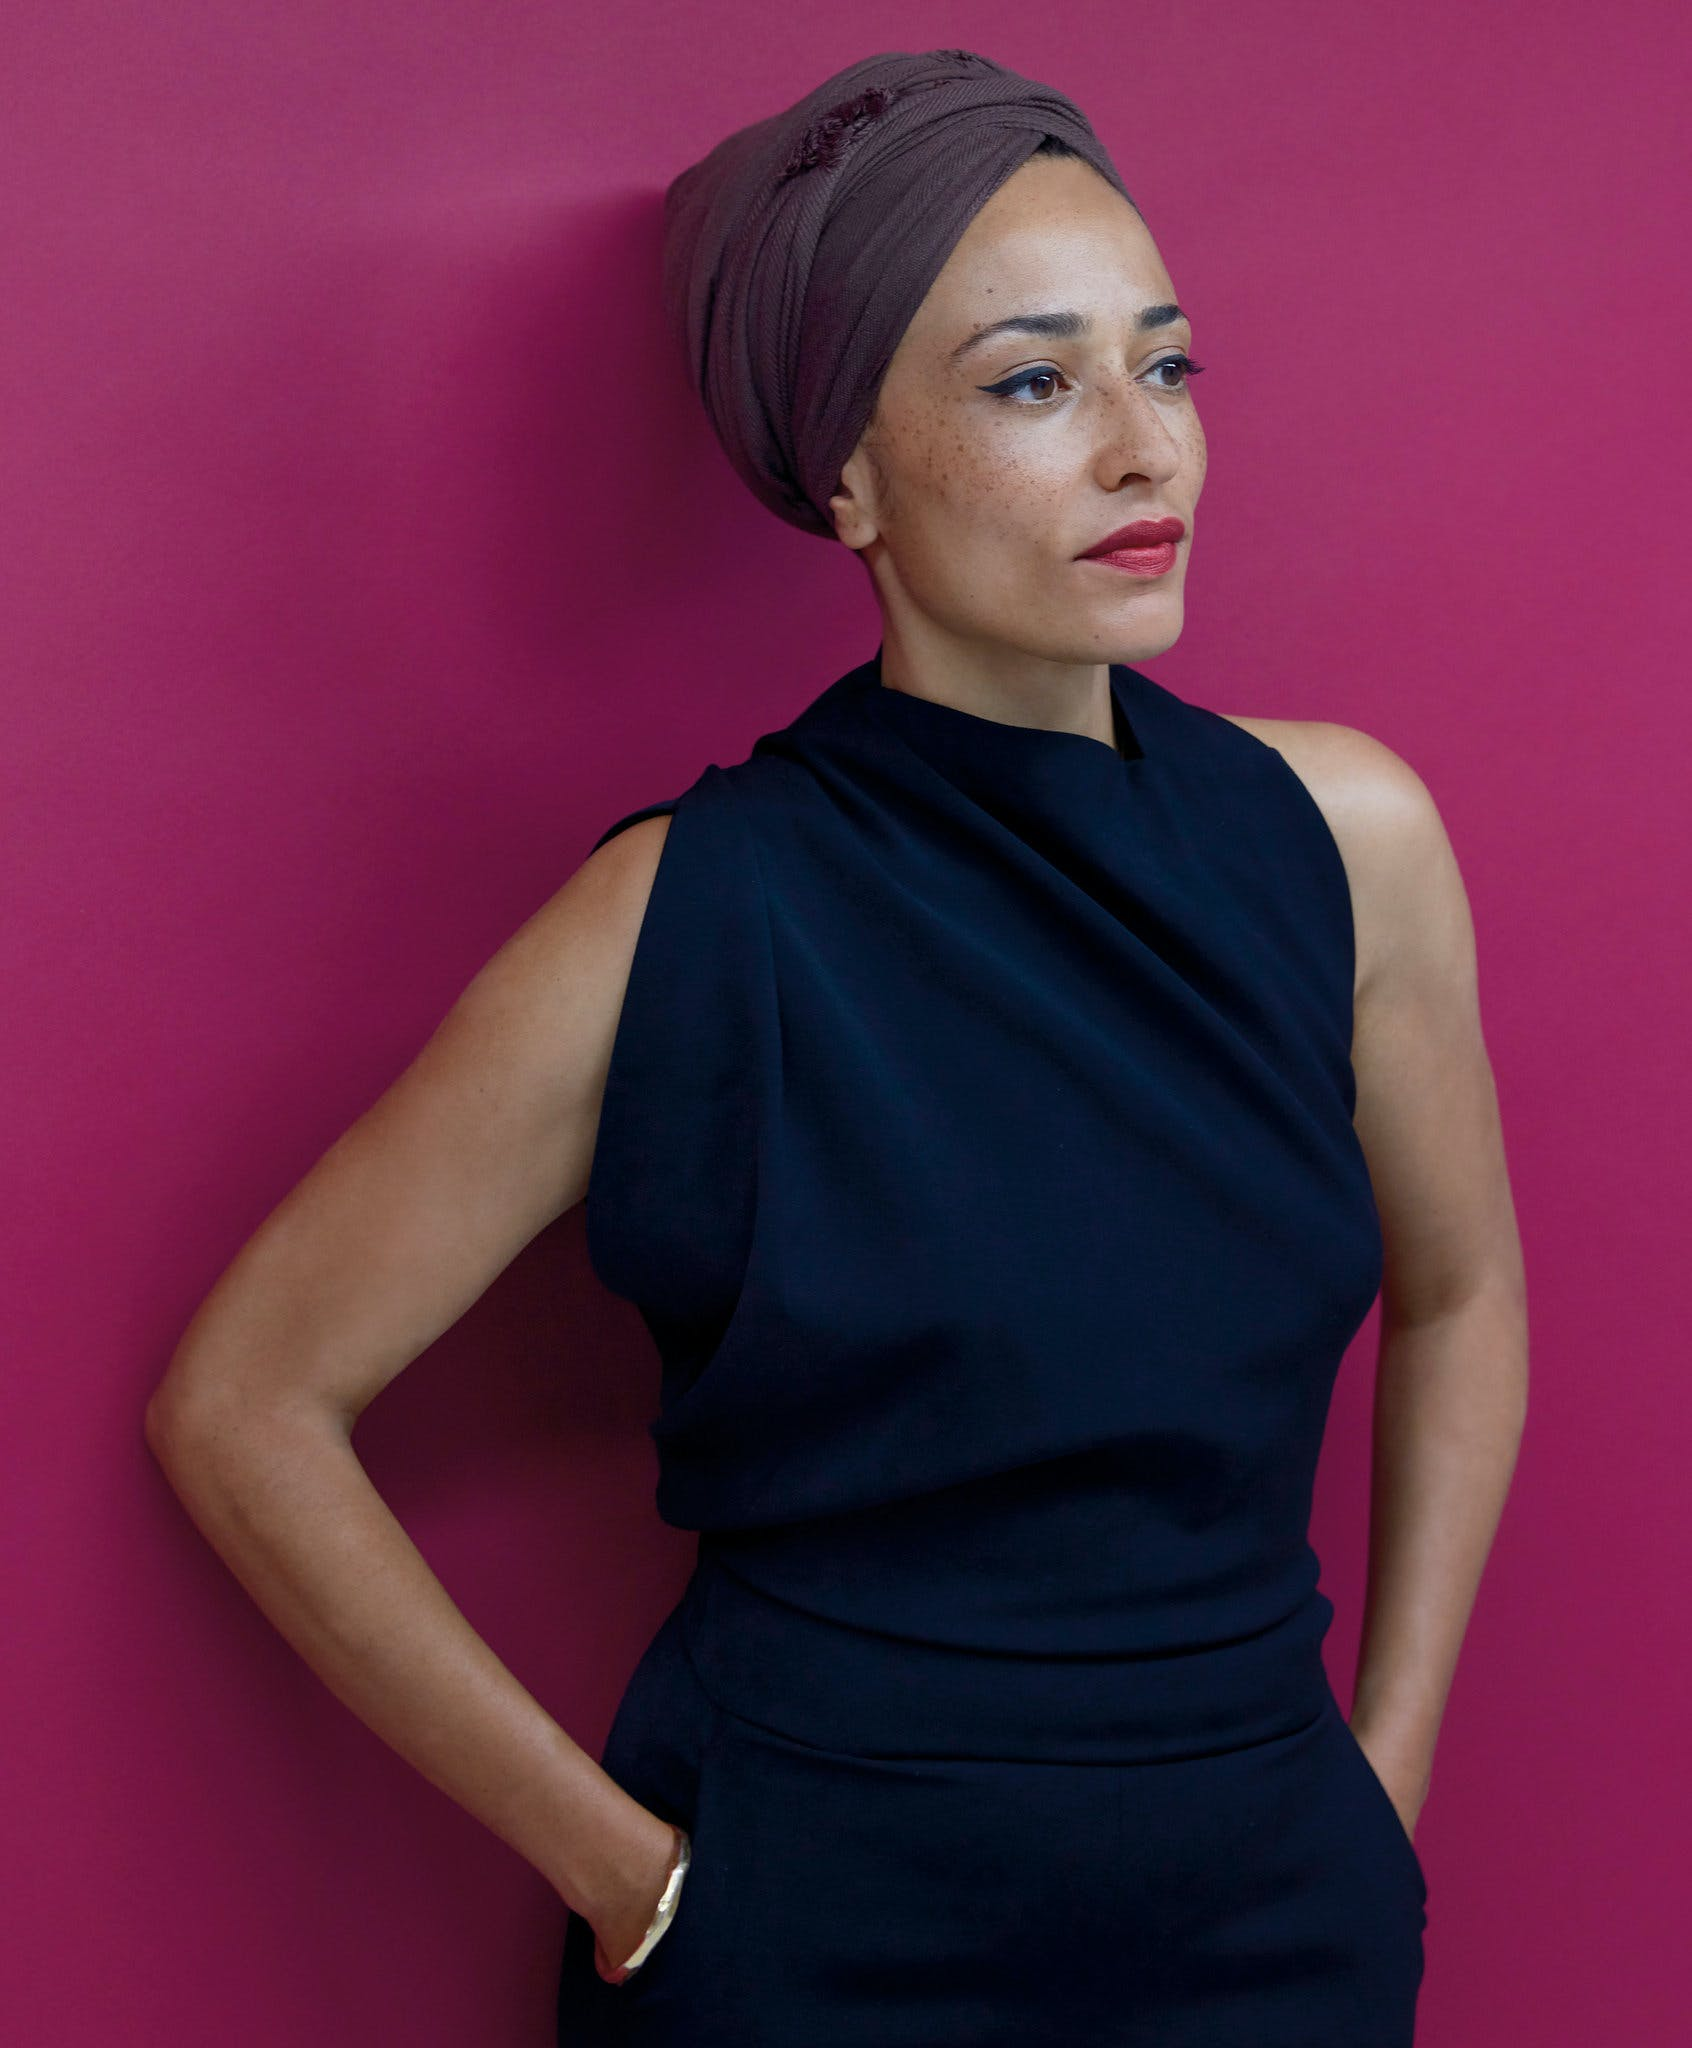 zadie smith books articles 11.3